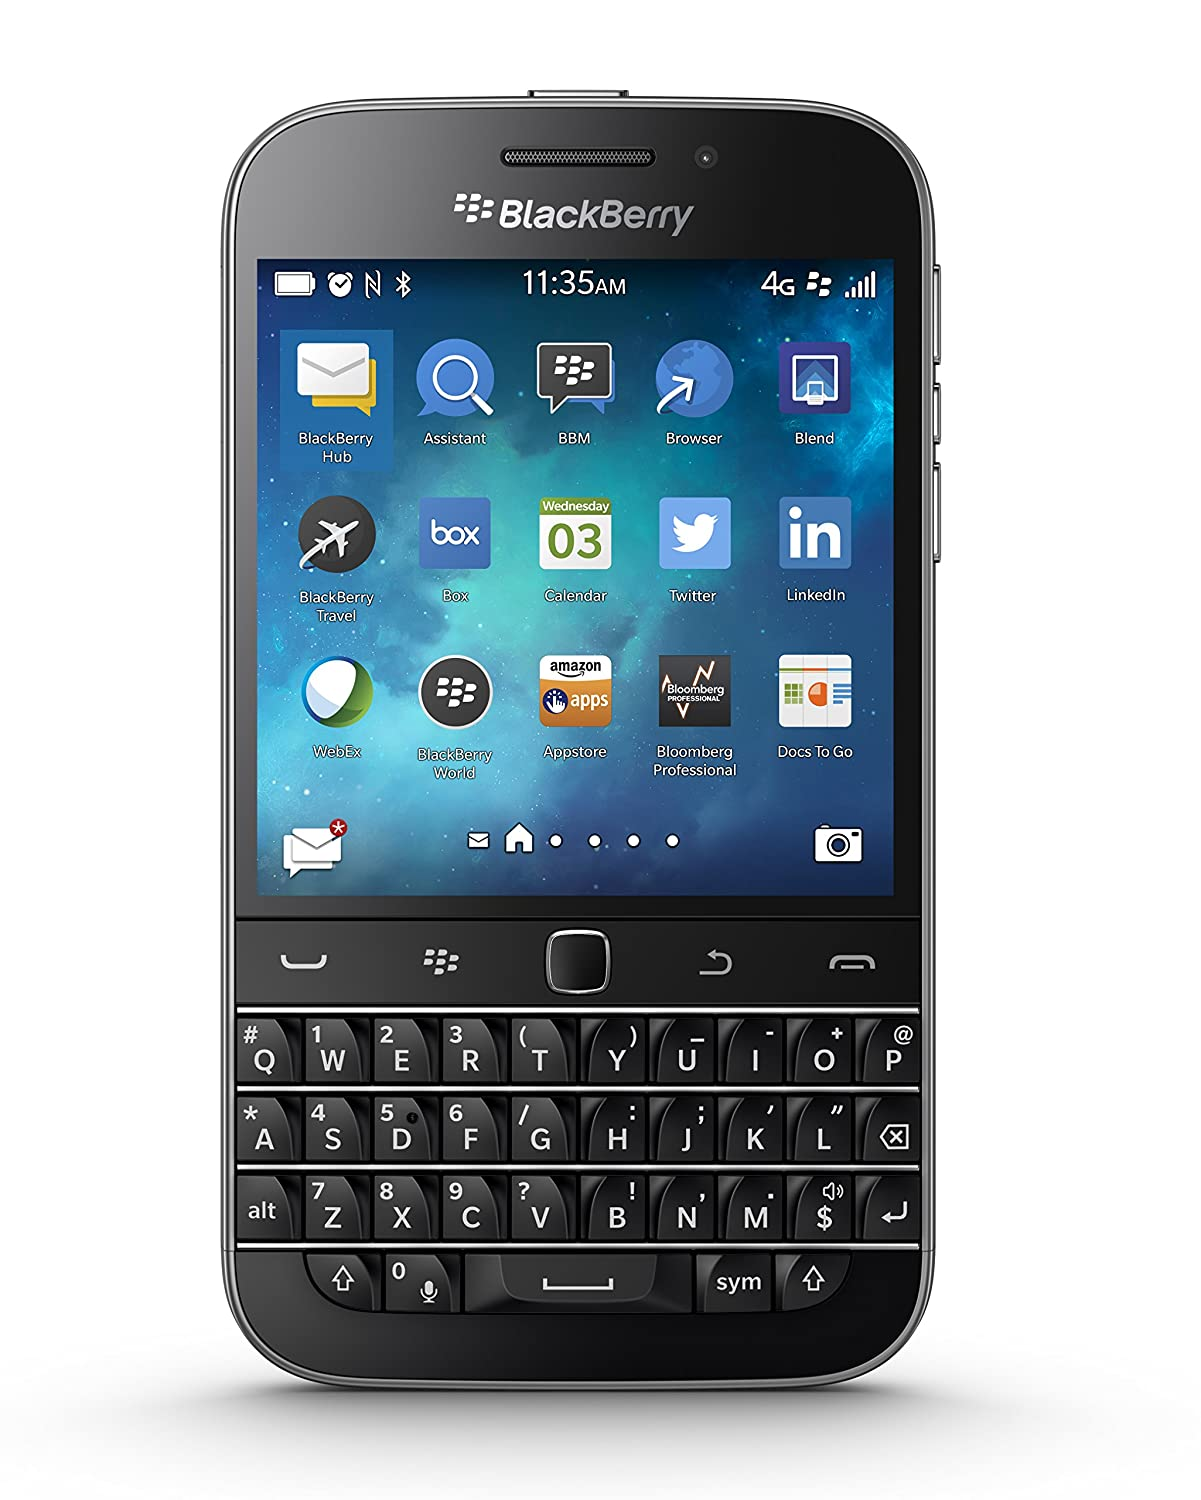 blackberry cell phone user manual open source user manual u2022 rh dramatic varieties com BlackBerry Curve 8900 BlackBerry Curve 8900